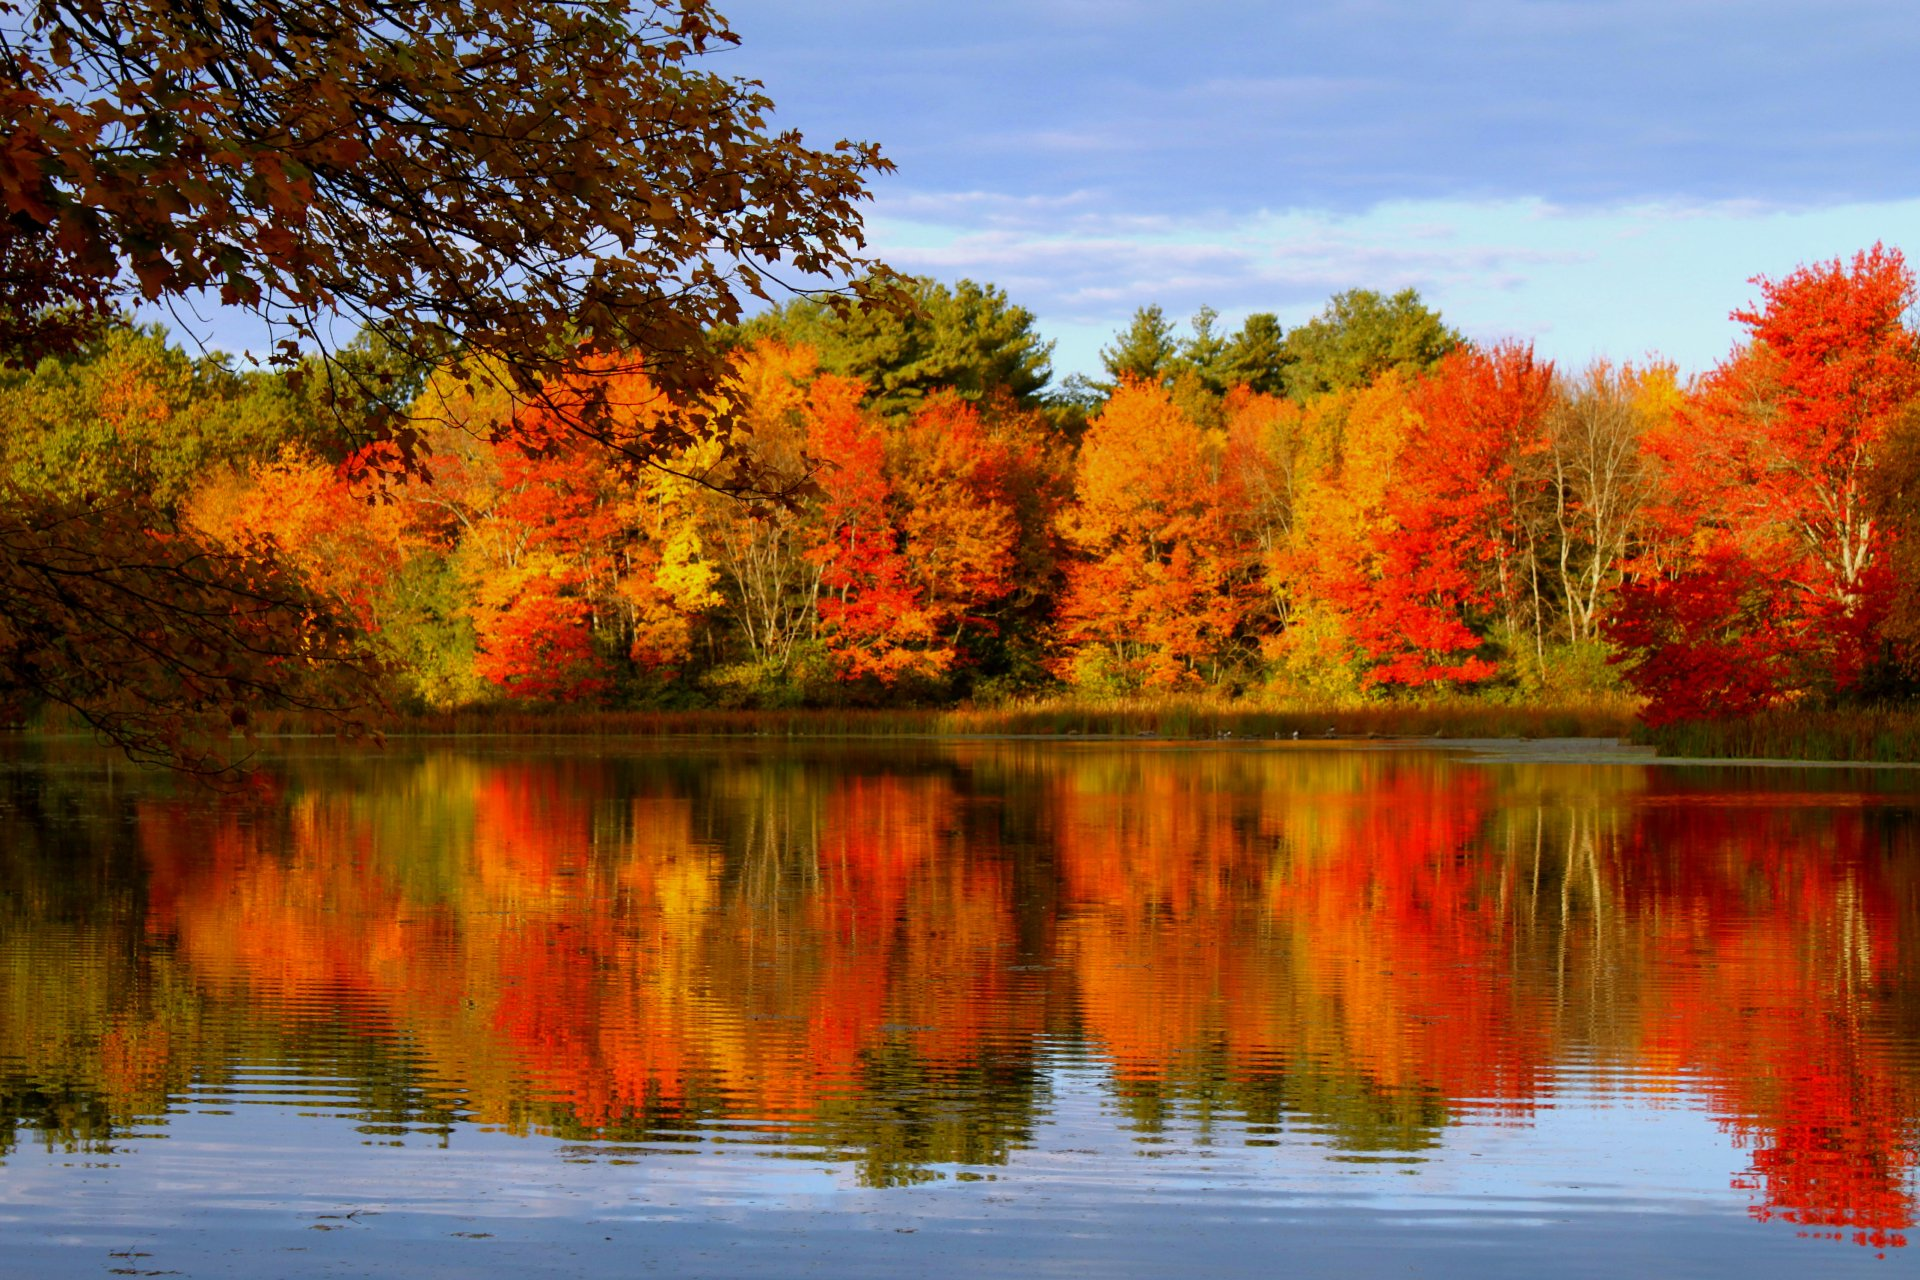 Fall Foliage Iphone Wallpaper Autumn Trees Reflected In Lake 4k Ultra Hd Wallpaper